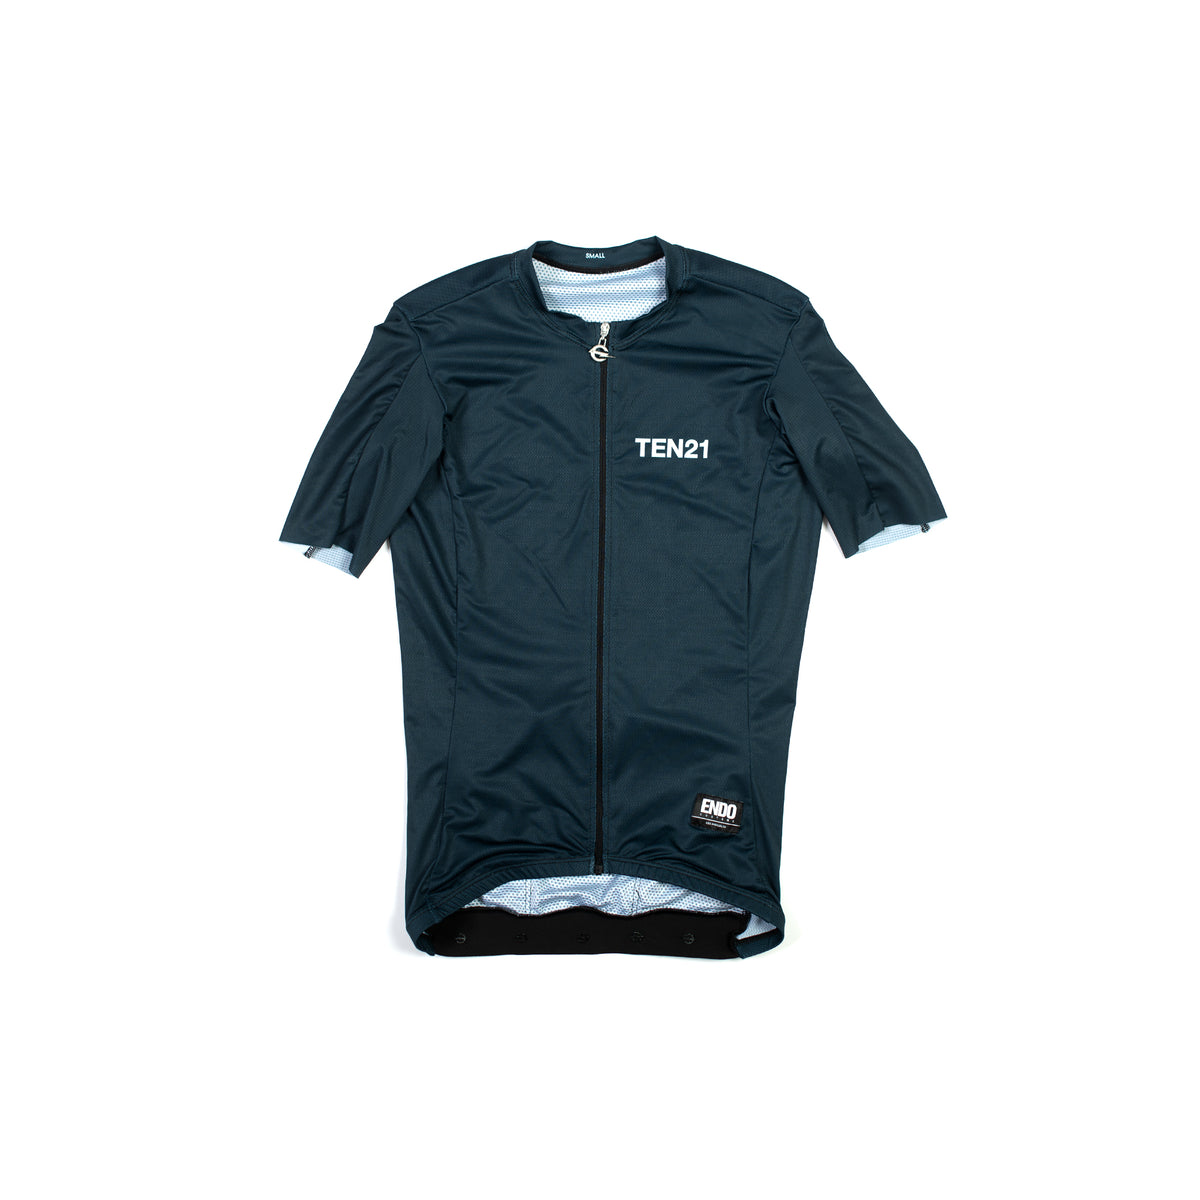 CORE - LADERA 2.0 JERSEY - BLUE